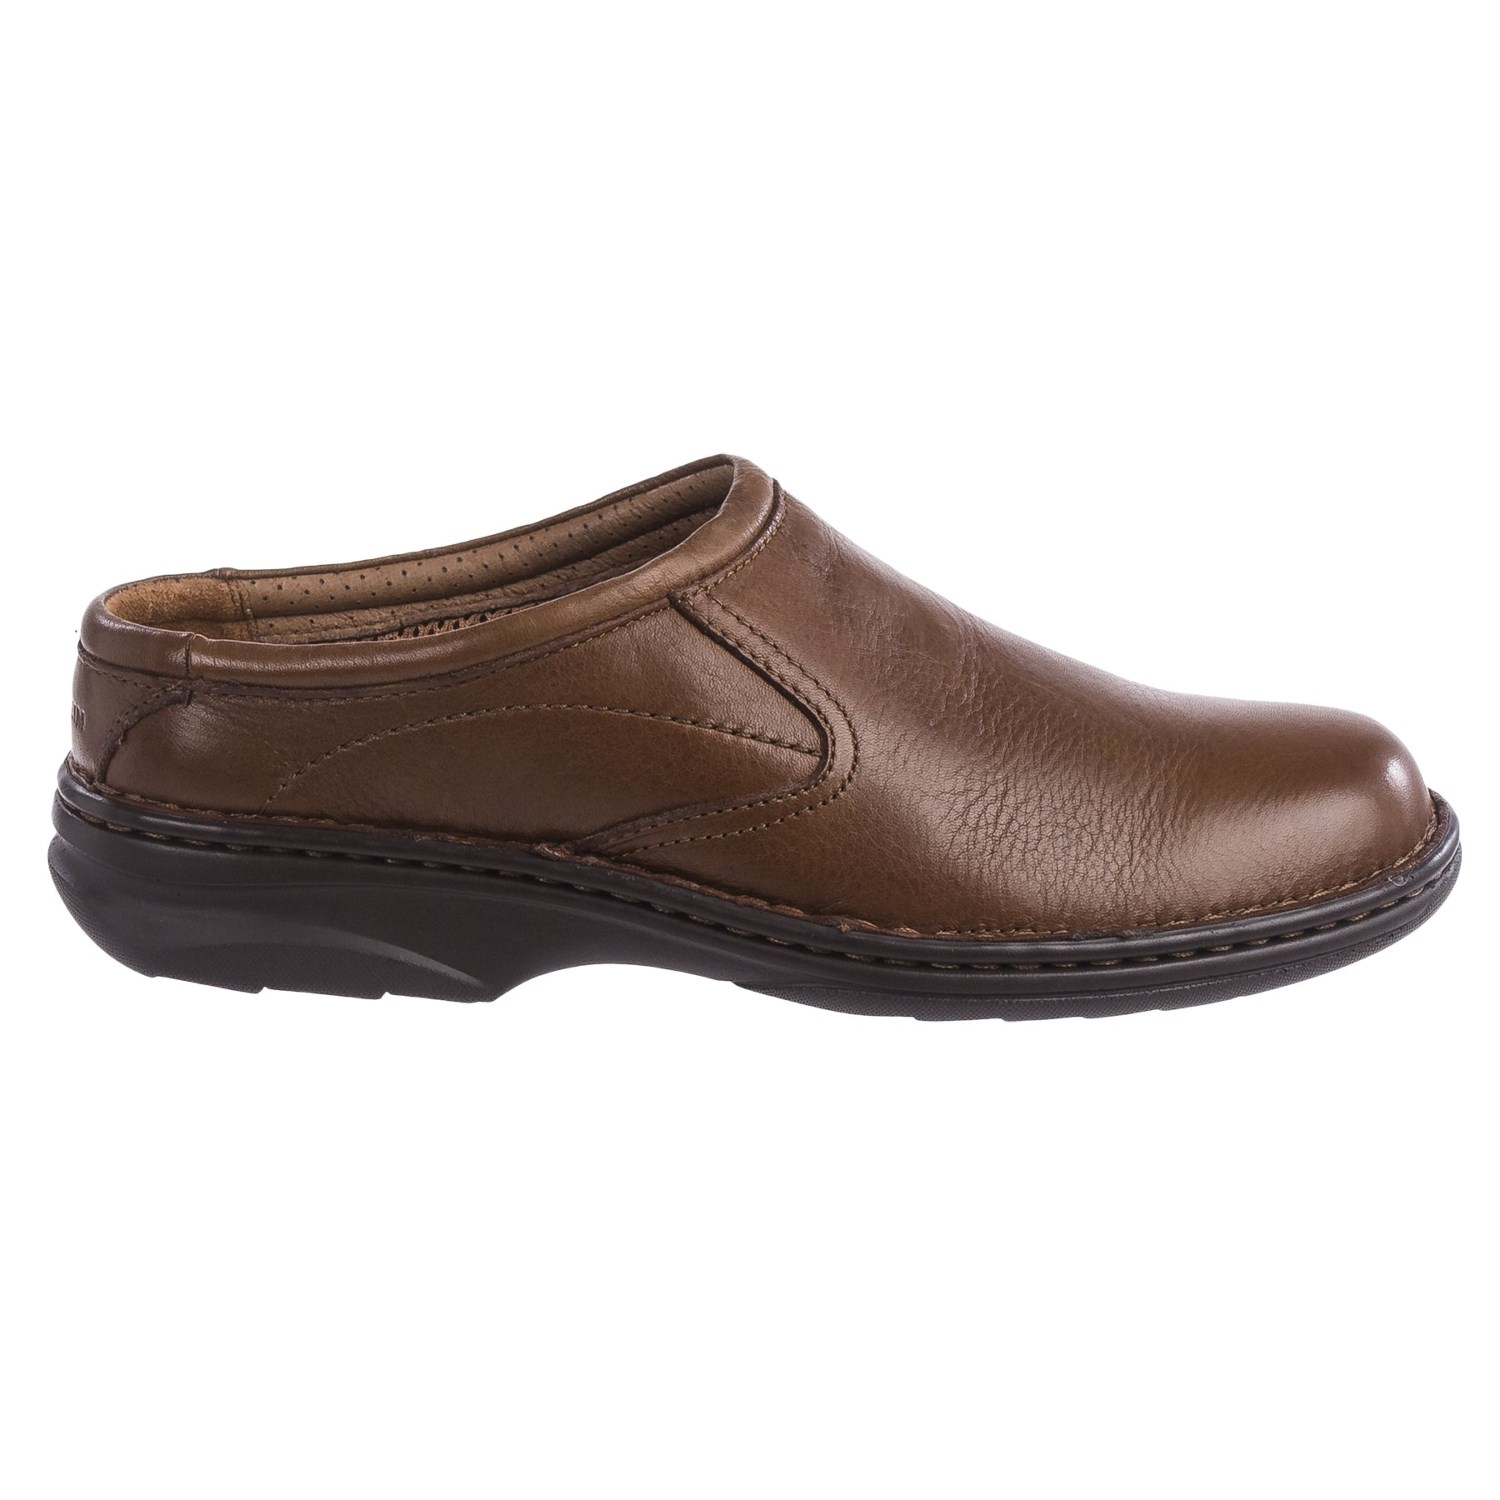 Dansko Shoes Amazon